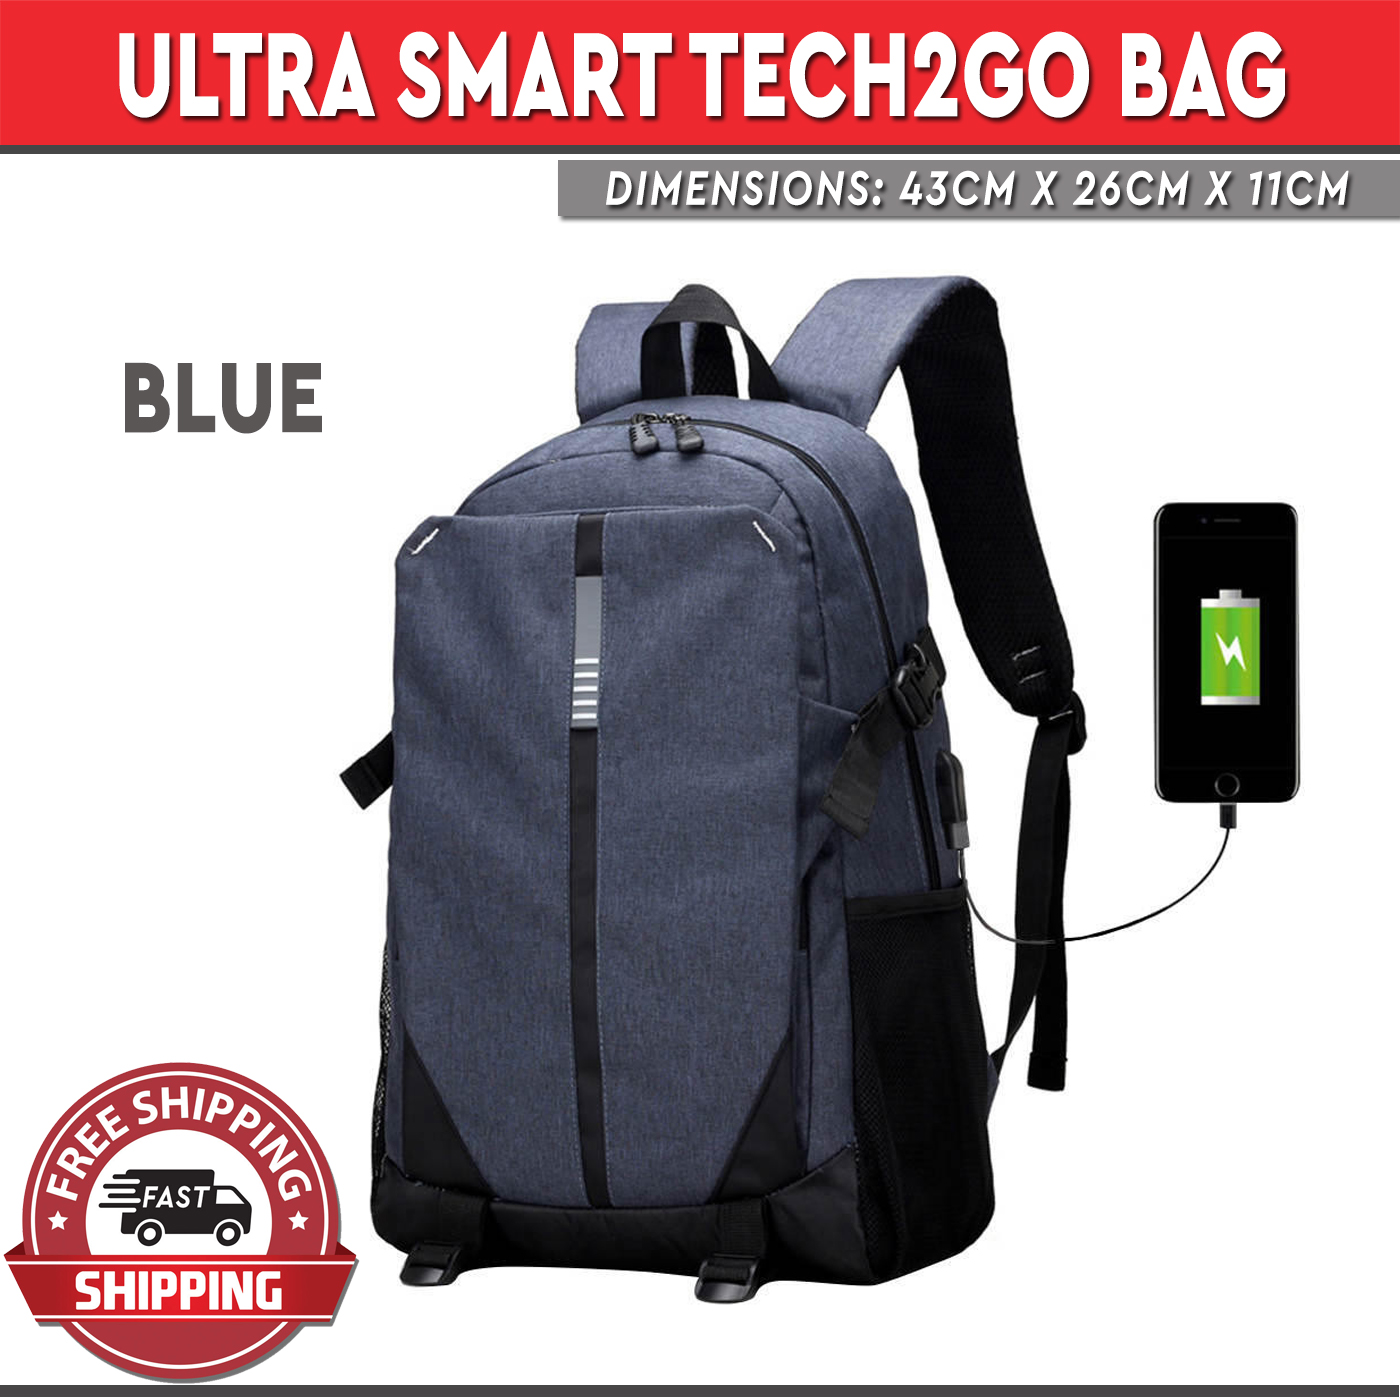 02fc5cd820 Ultra Smart Tech2Go Rechargable Large Capacity Laptop Bag anvas Backpack  with USB Charging Port - Blue